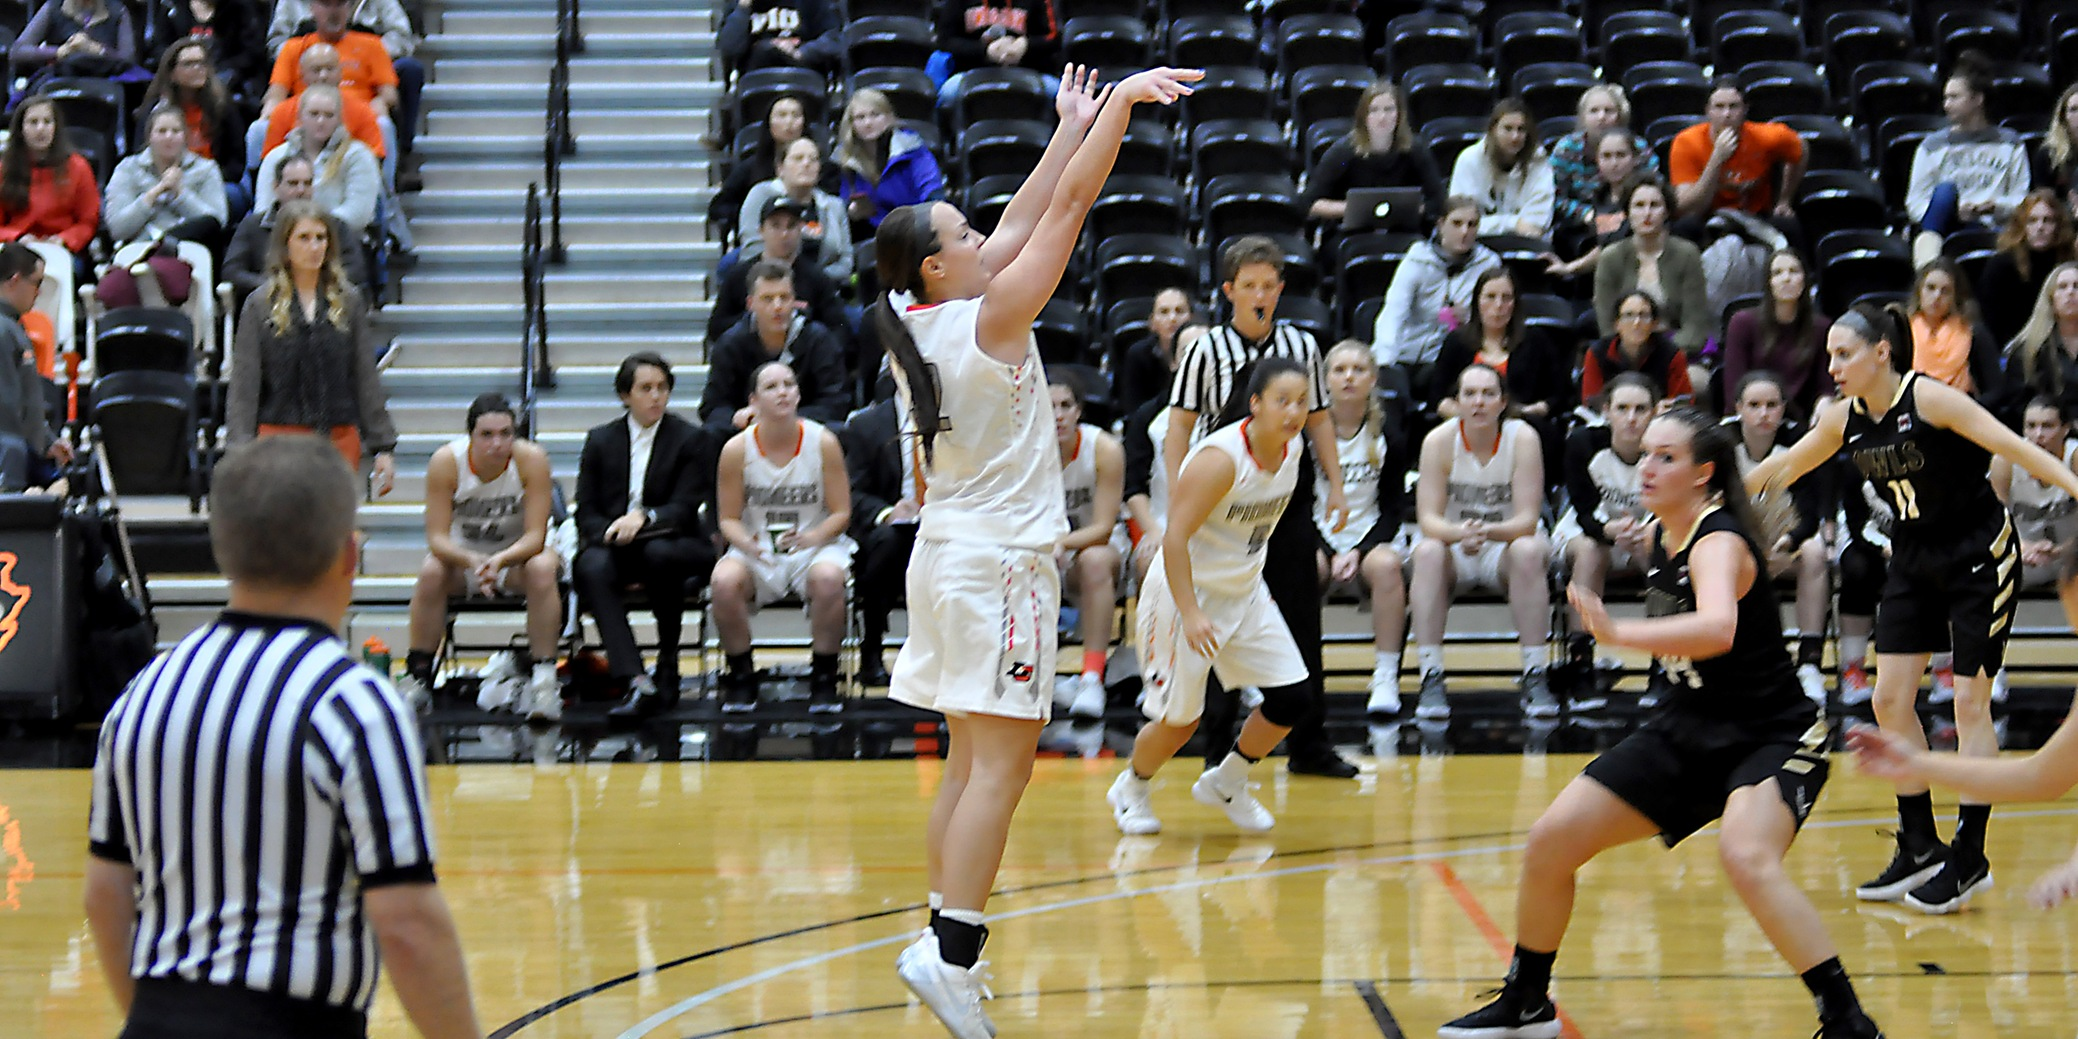 Wood opens with double-double, Leith scores 15 as Pioneers drop debut